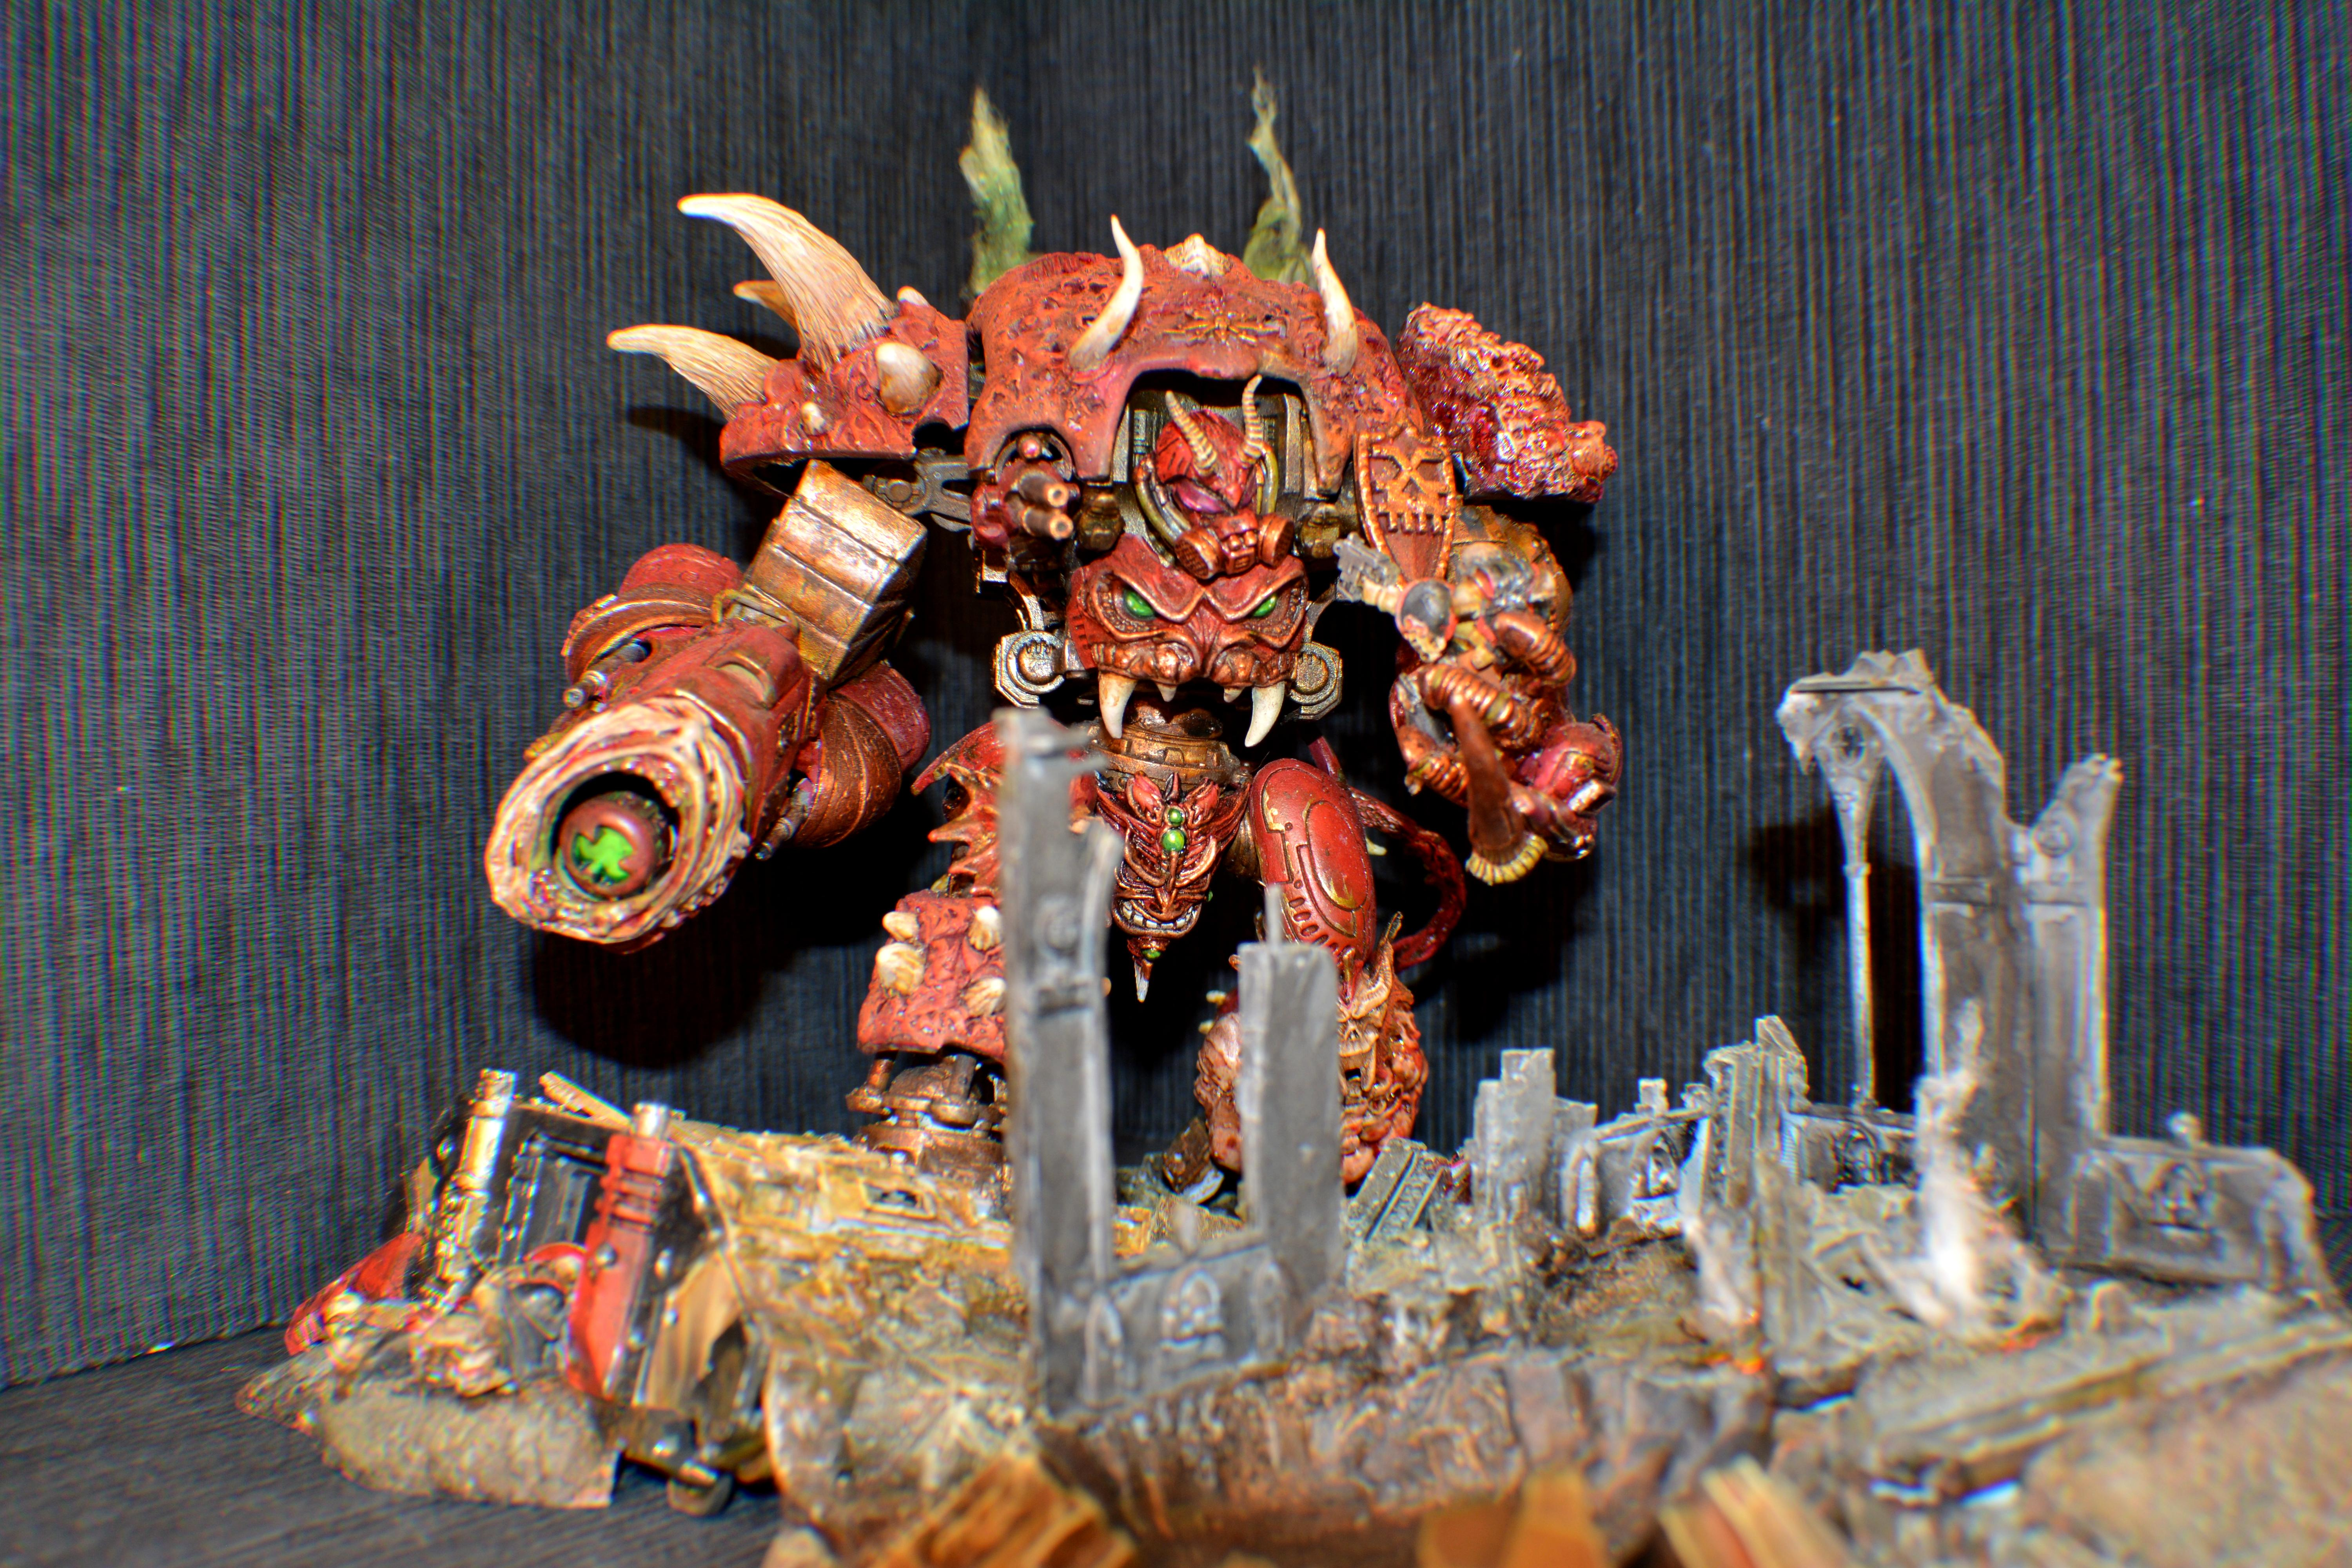 Forge World, Gamesworkshop, Imperial, Knights, Reaver, Space Marines, Titan, Warhammer 40,000, Warhammer Fantasy, Warhound